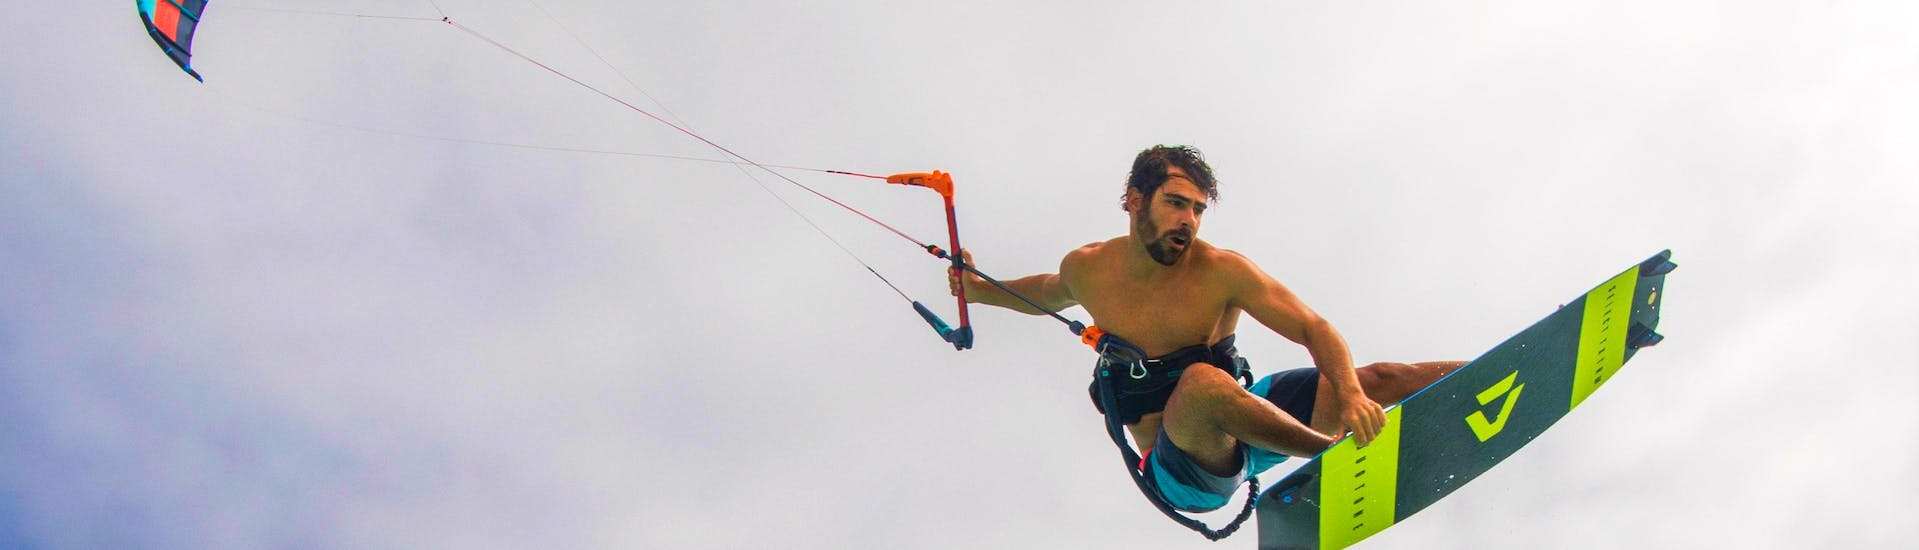 refresher-kitesurfing-lessons-advanced-kitereiders-hero